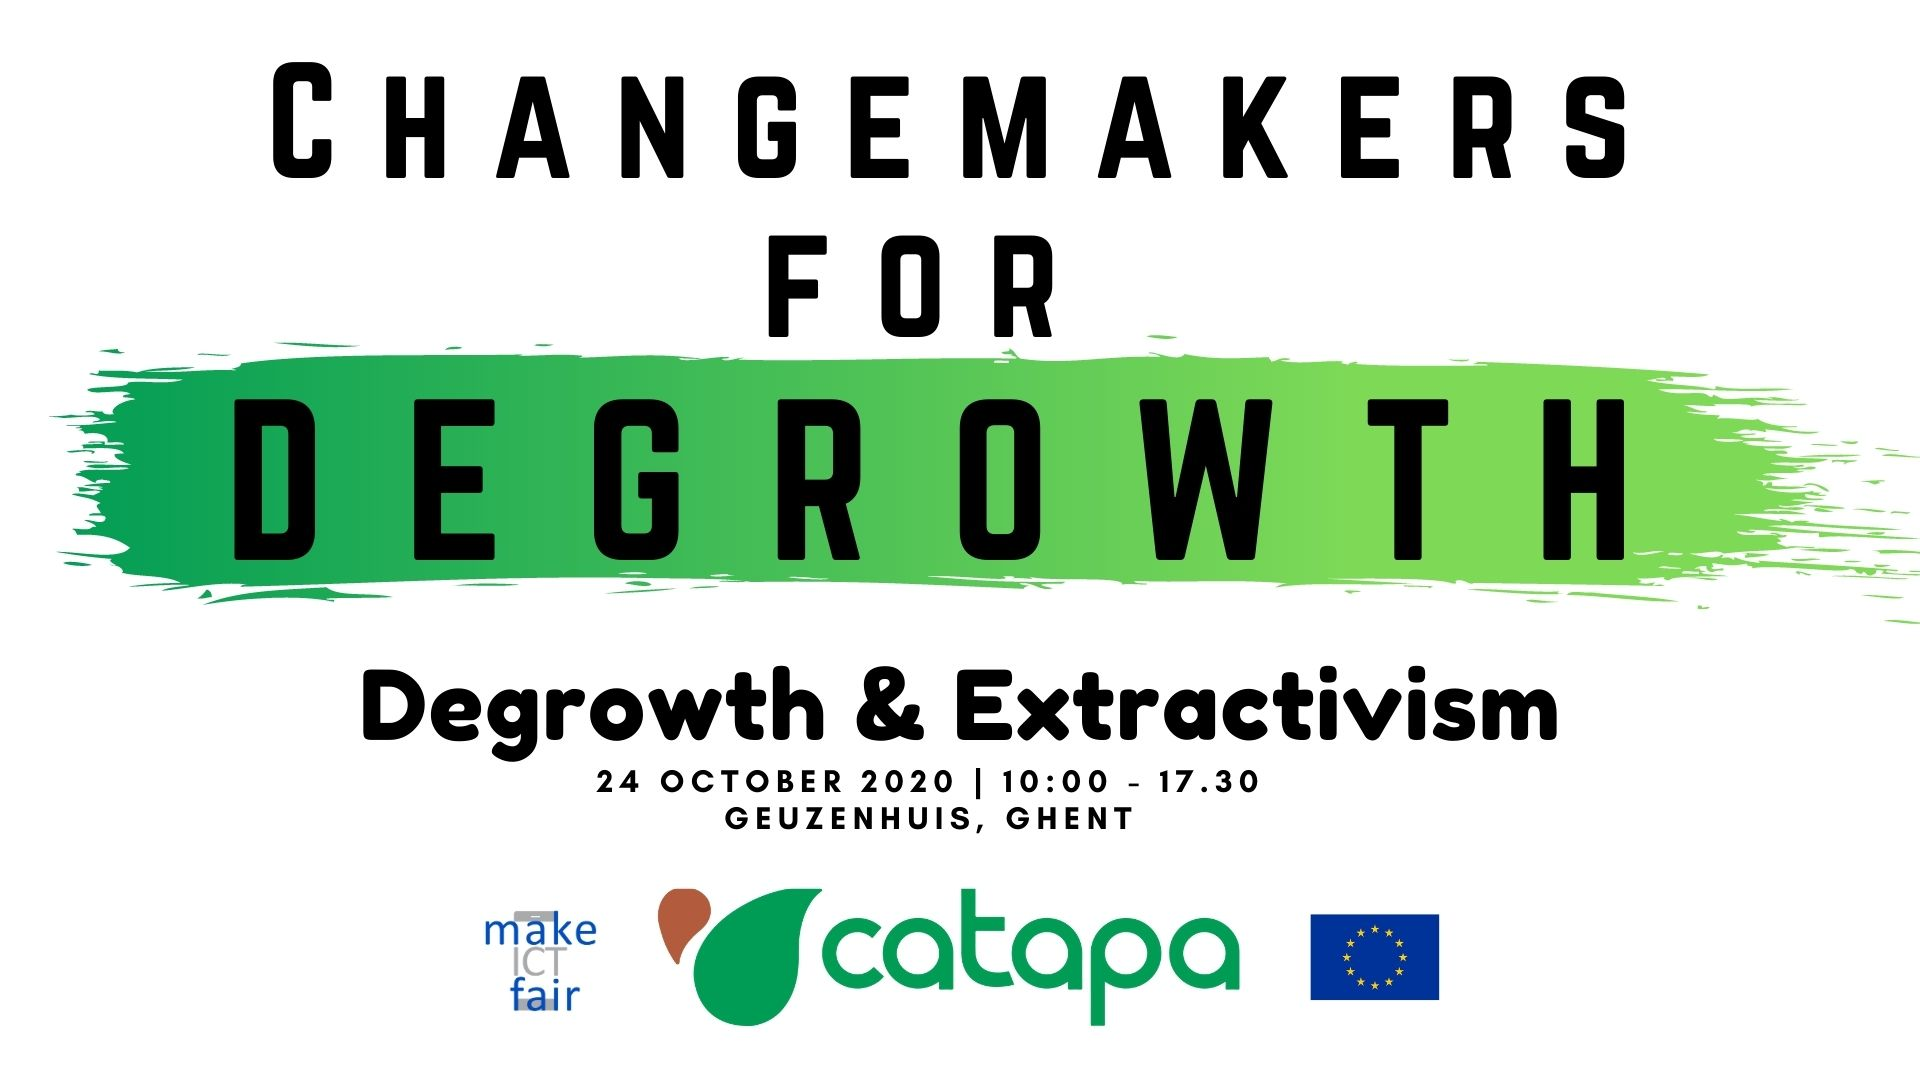 Change makers for Degrowth green logo. Degrowth and Extractivism event time and date.